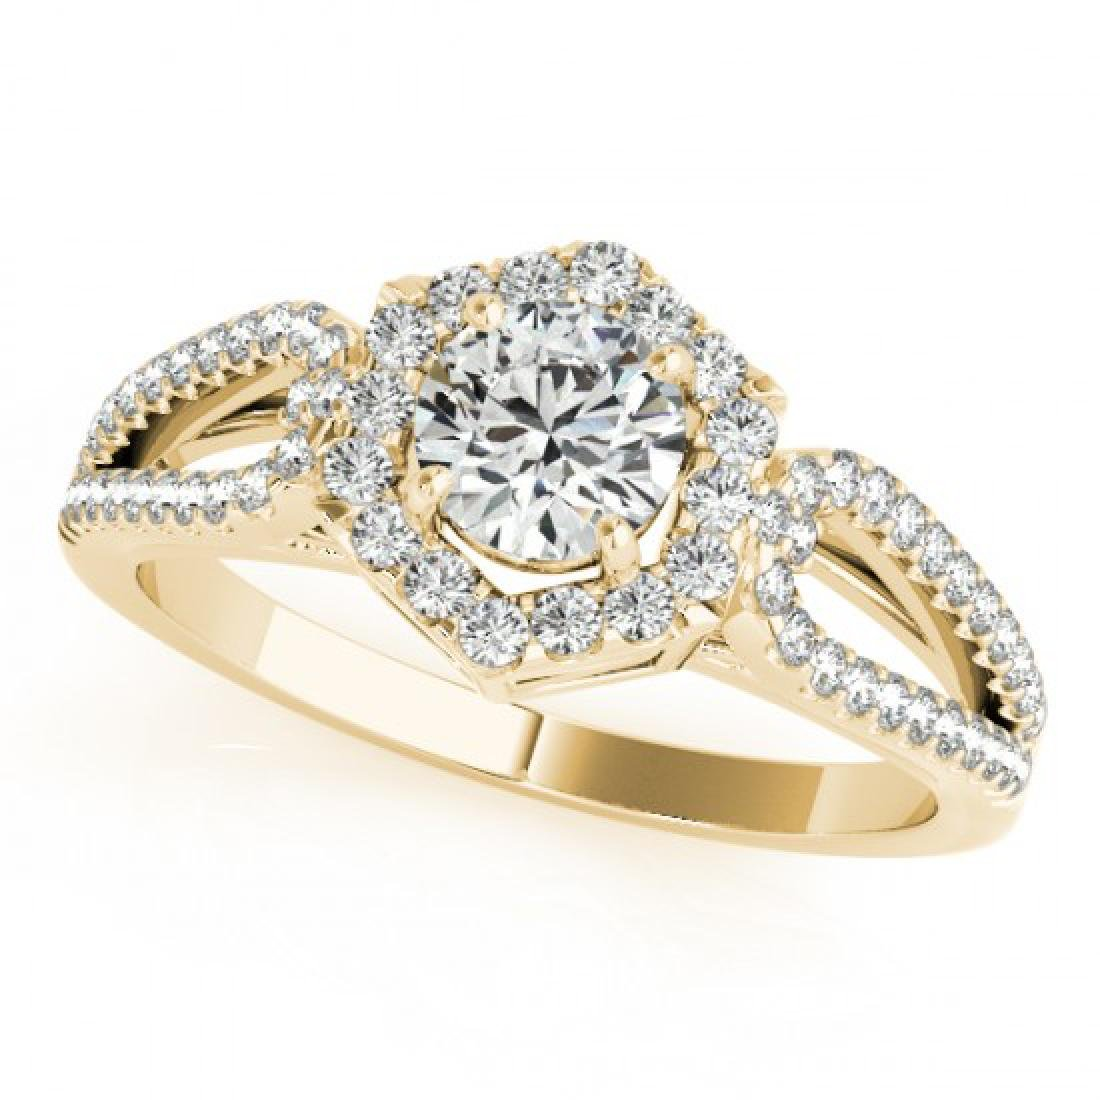 1.43 CTW Certified VS/SI Diamond Solitaire Halo Ring